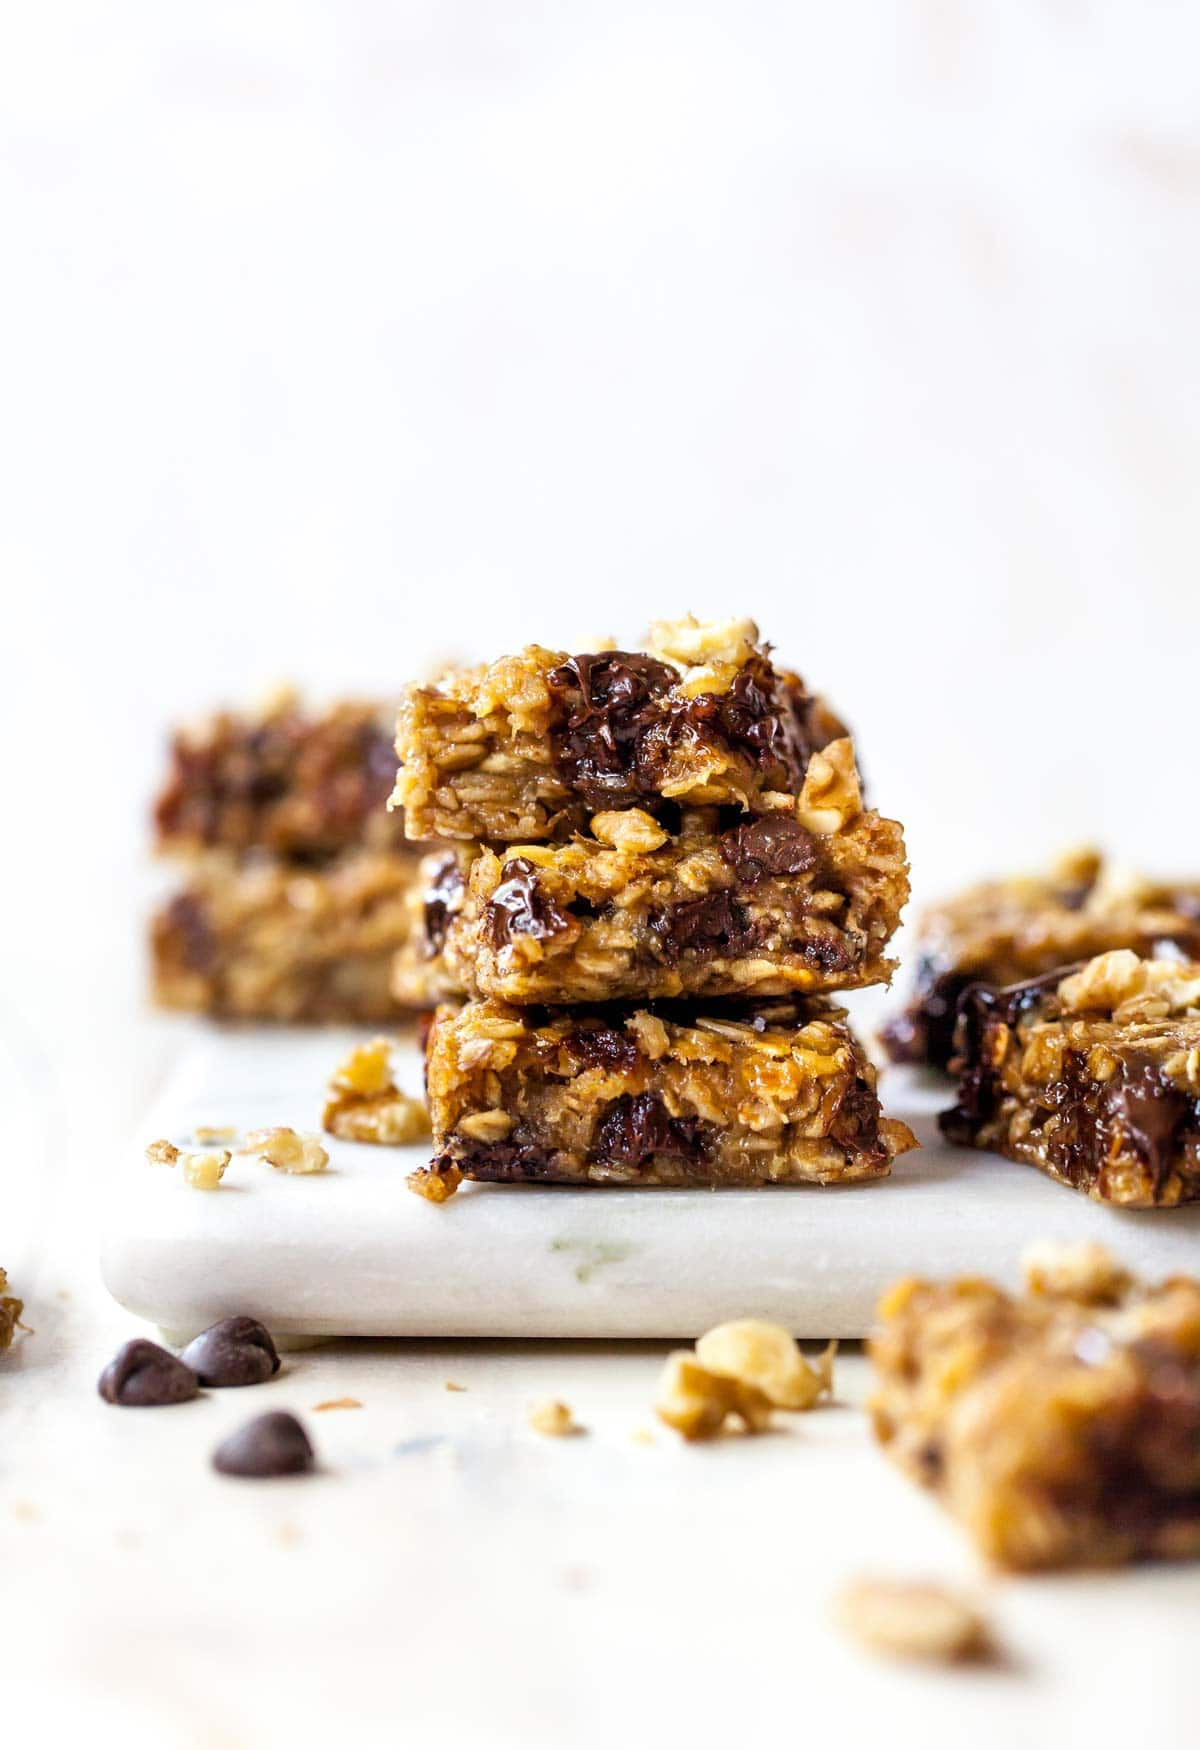 Banana Peanut Butter Oat Bars